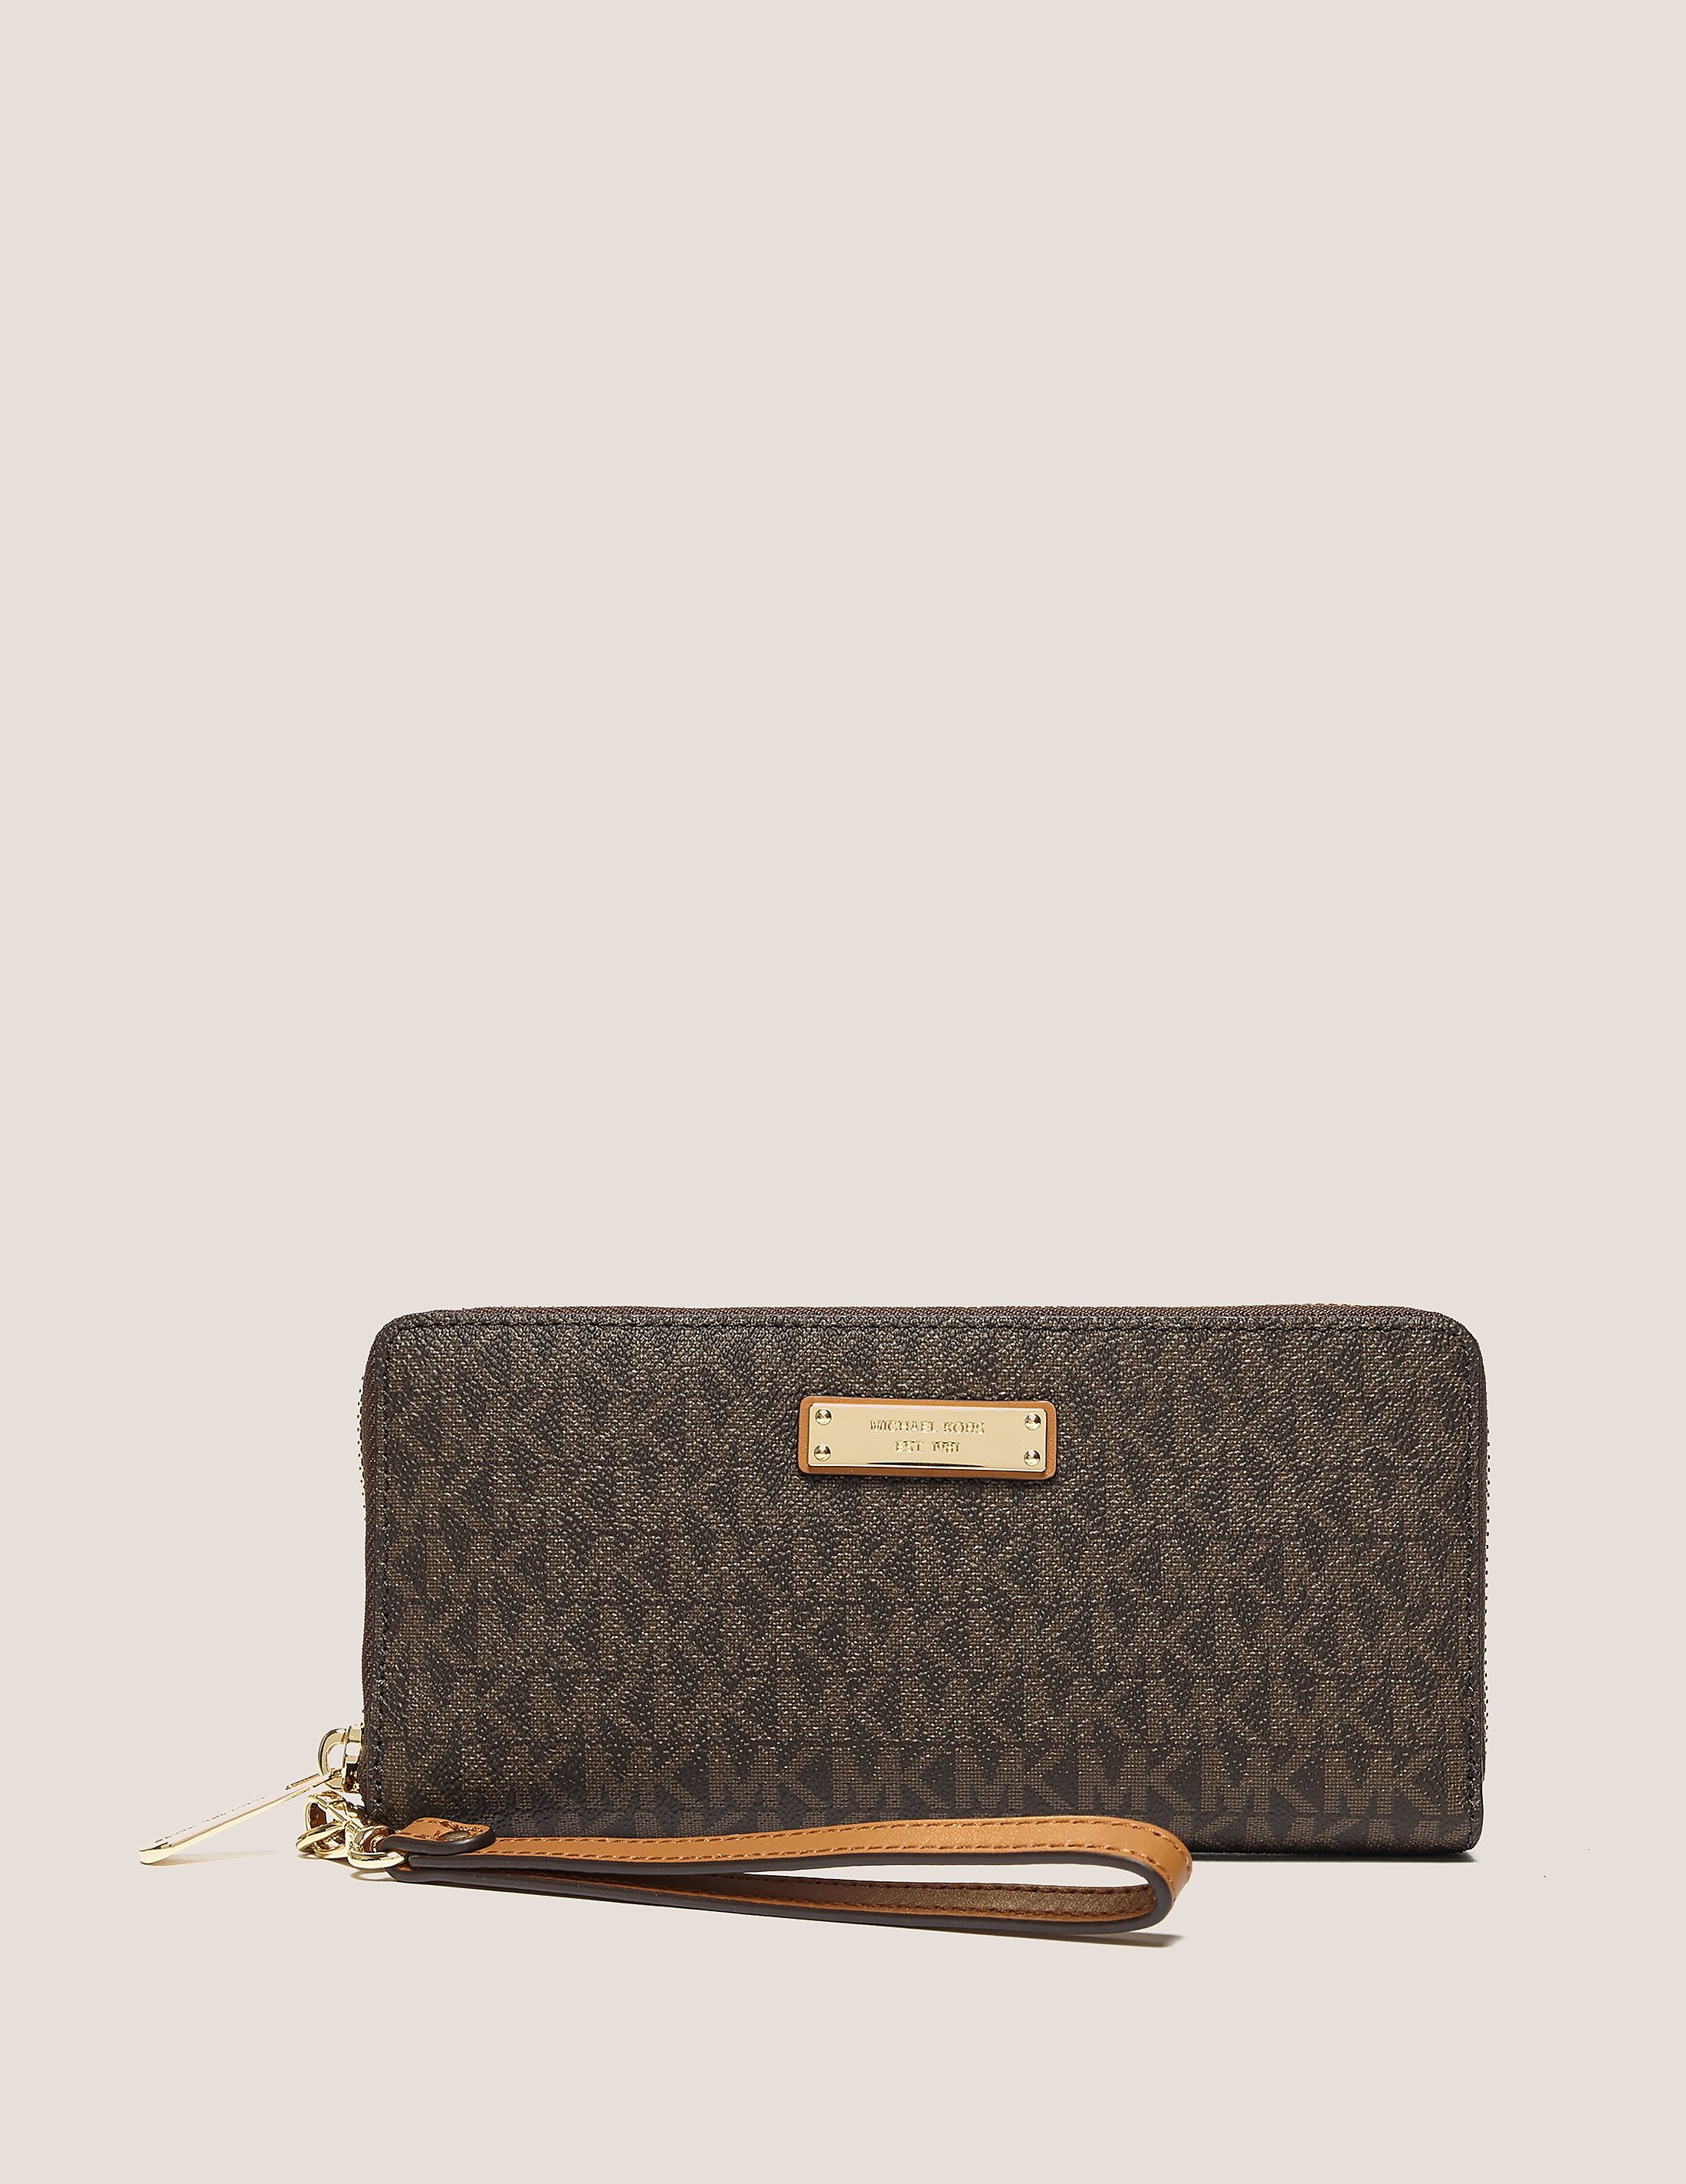 Michael Kors Jet Set Travel Continental Wristlet